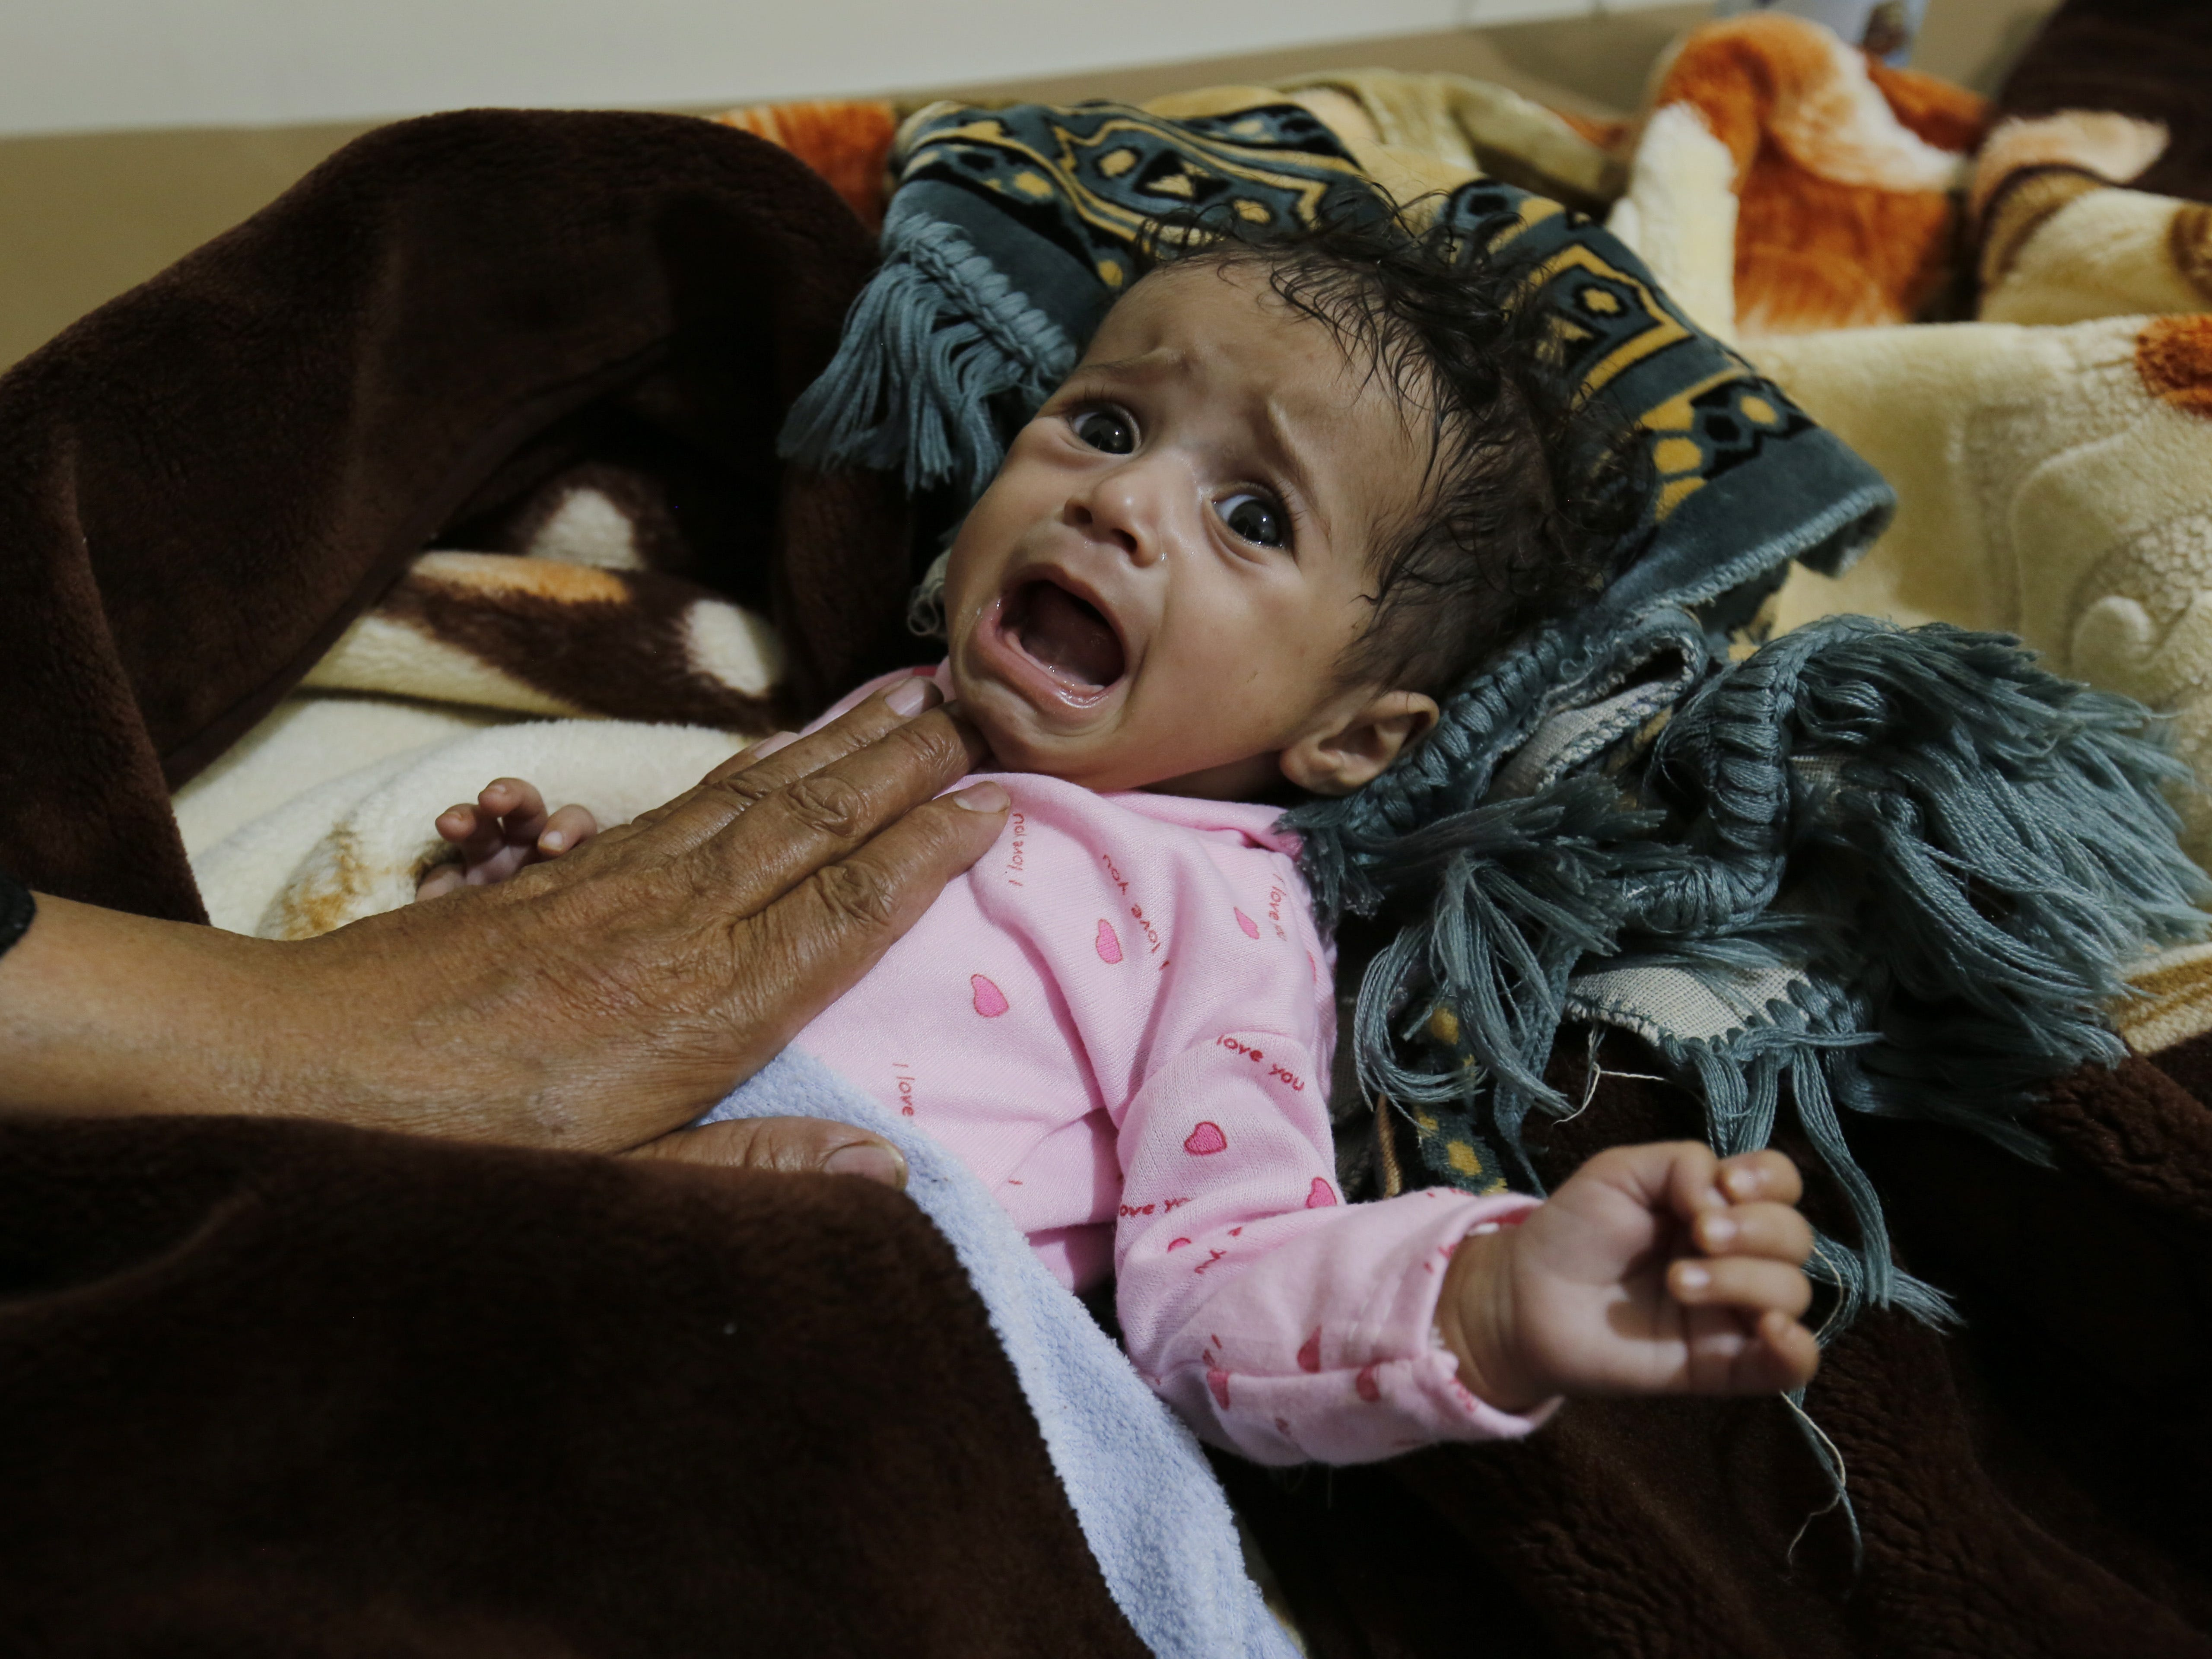 A woman holds her cholera-infected child as he receives treatment at a cholera treatment center amid a cholera outbreak, in Sana'a, Yemen on April 20, 2019. According to reports, nearly 460 deaths of cholera have been registered in Yemen since the beginning of 2019 while more than 223 thousand suspected cases have been reported so far. Nearly a quarter of the cases of children are under five.